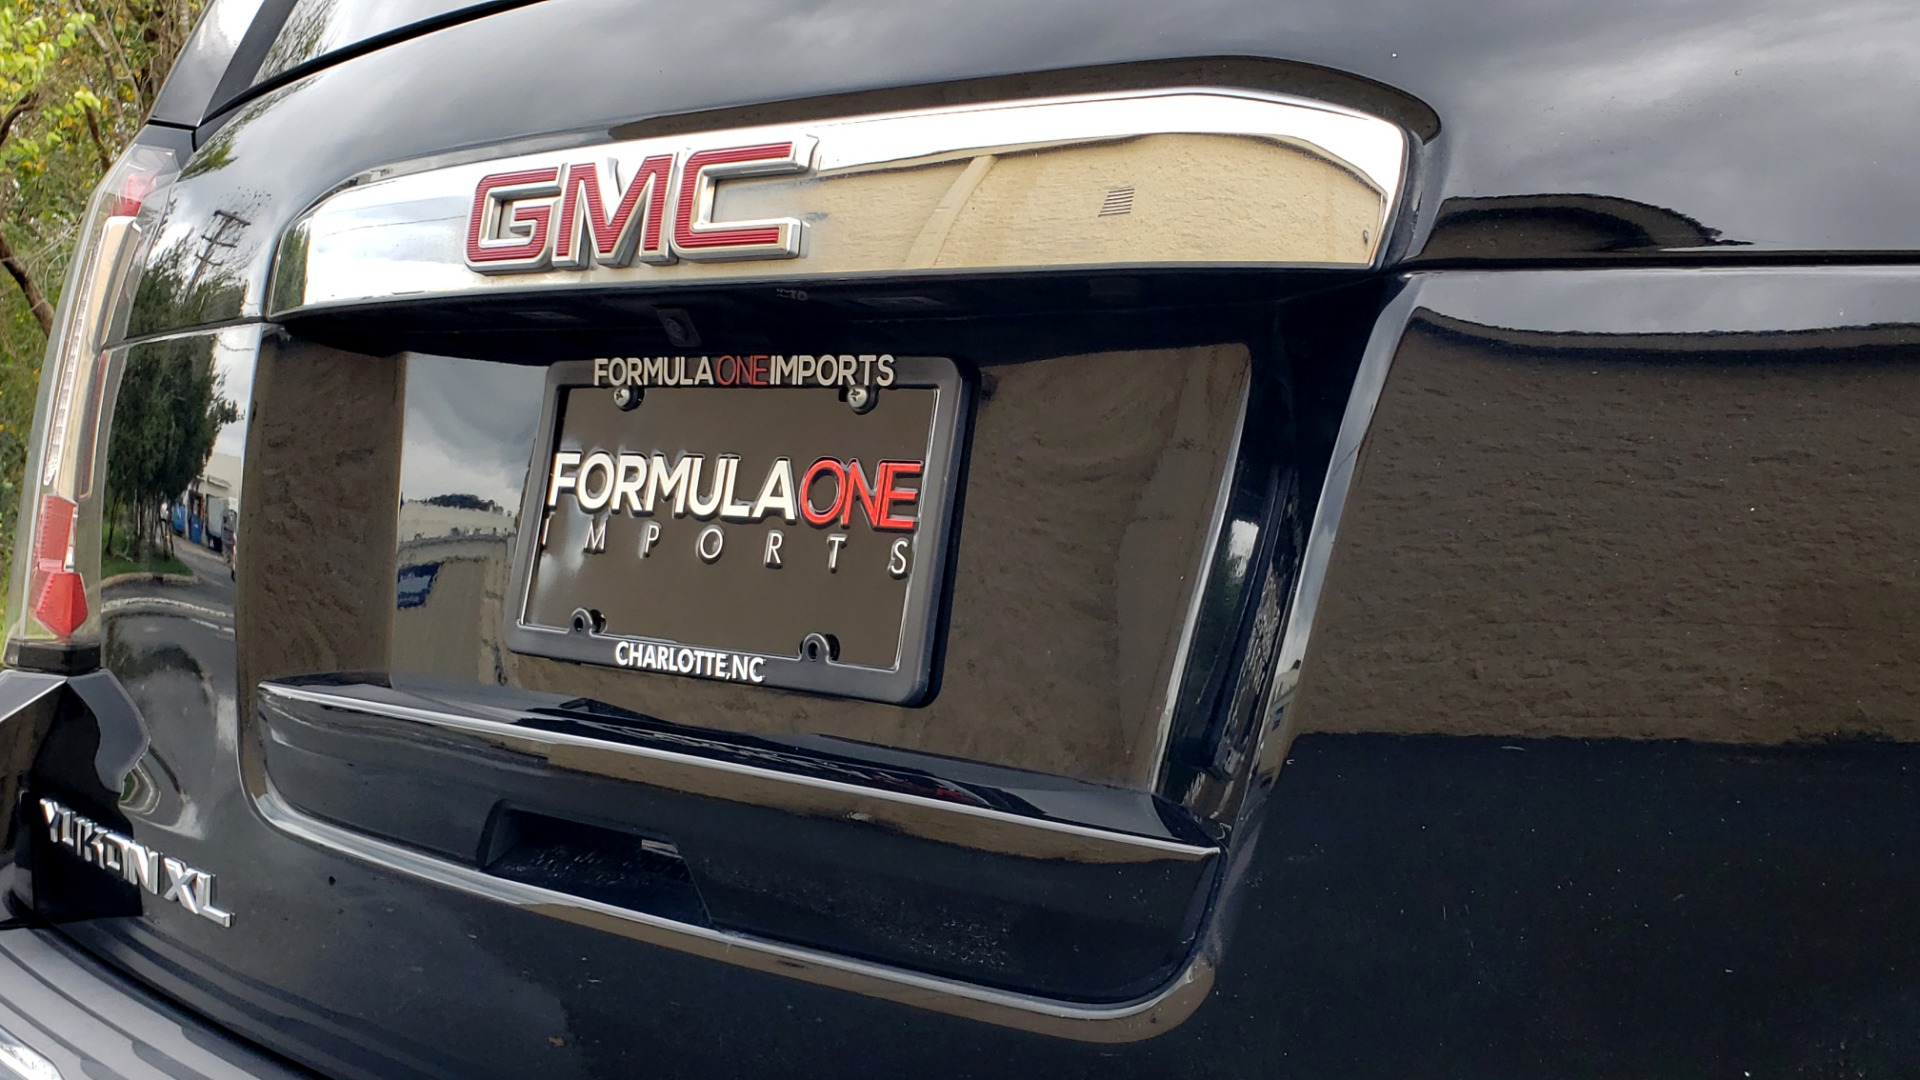 Used 2017 GMC YUKON XL DENALI 4WD / NAV / SUNROOF / ENT / 3-ROWS / BOSE / REARVIEW for sale $48,695 at Formula Imports in Charlotte NC 28227 31